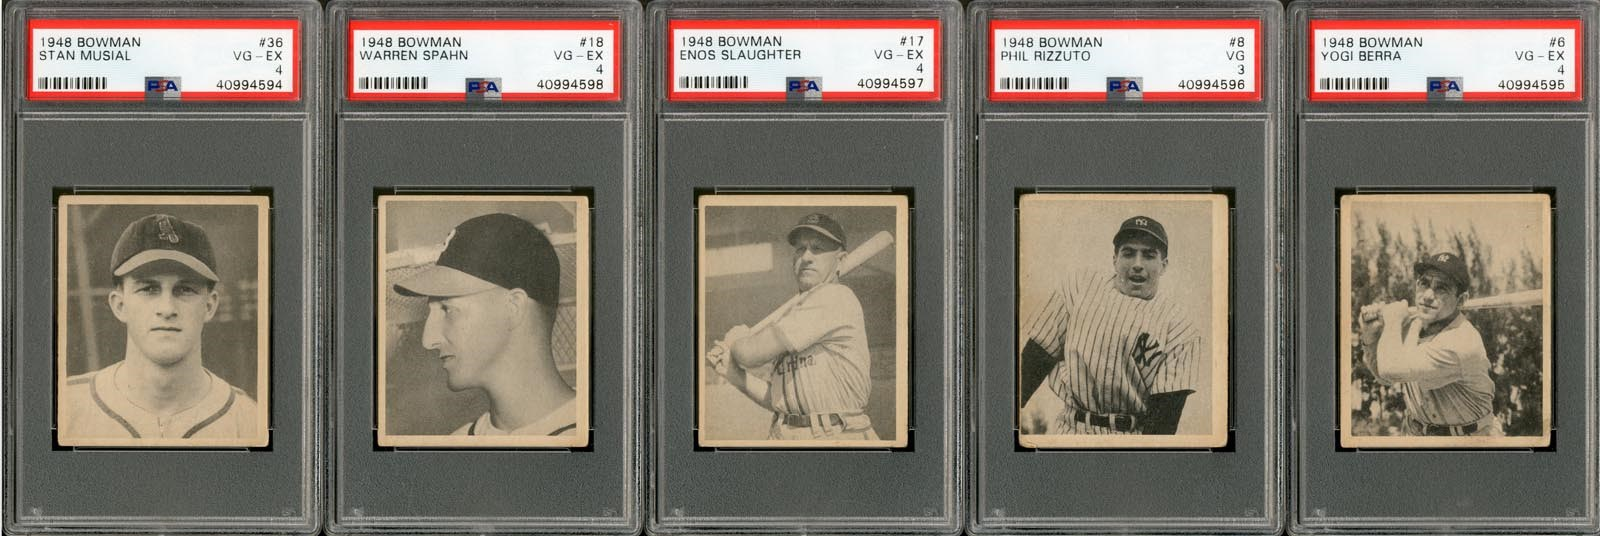 1948 Bowman Baseball Complete Set with (5) PSA Graded